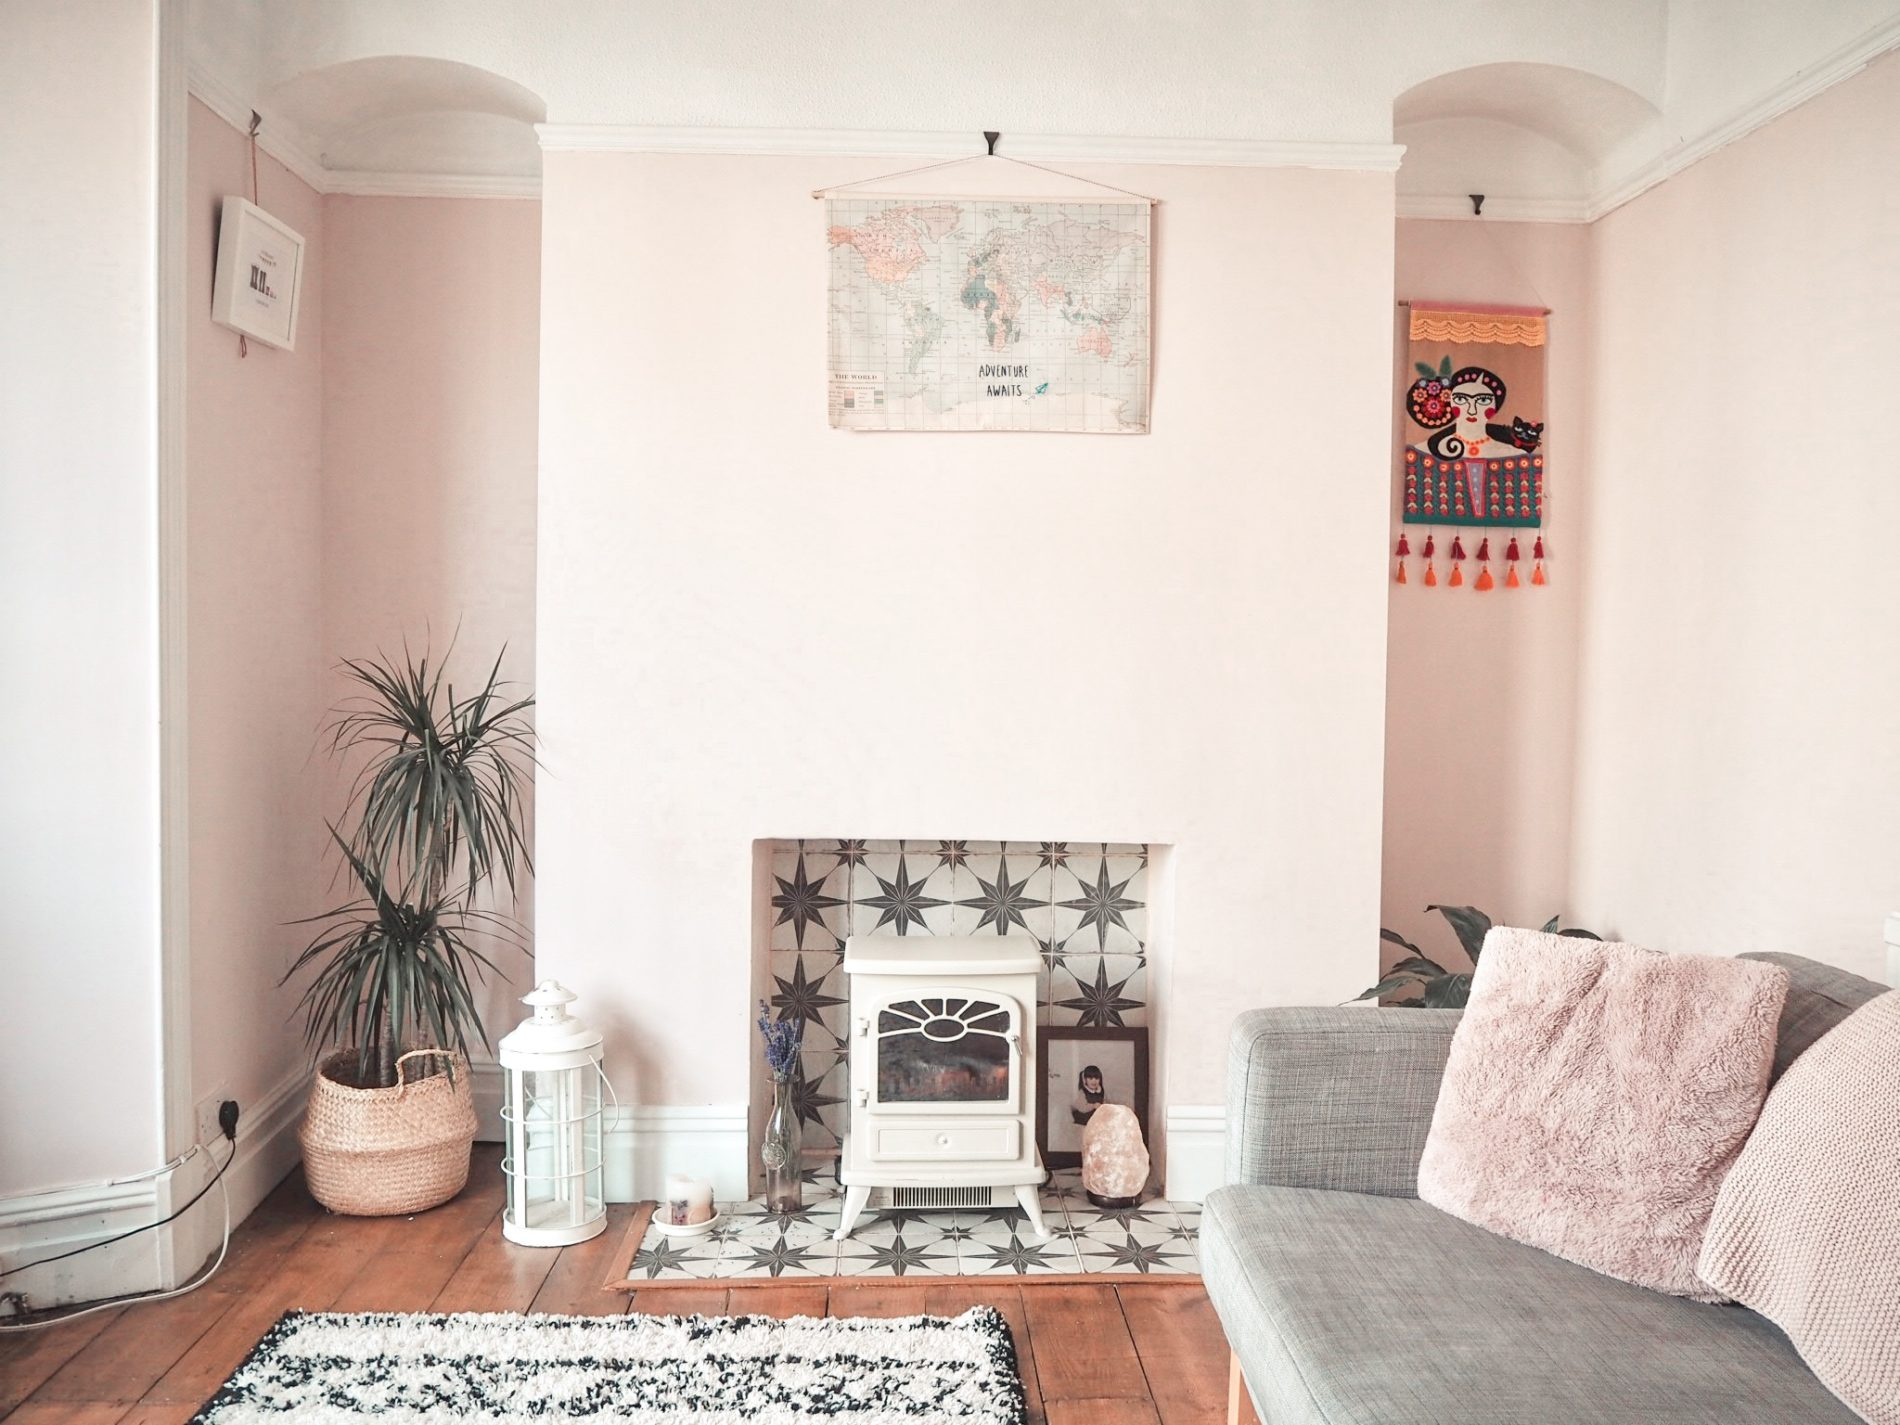 A pink living room makeover with dreamy star tiles